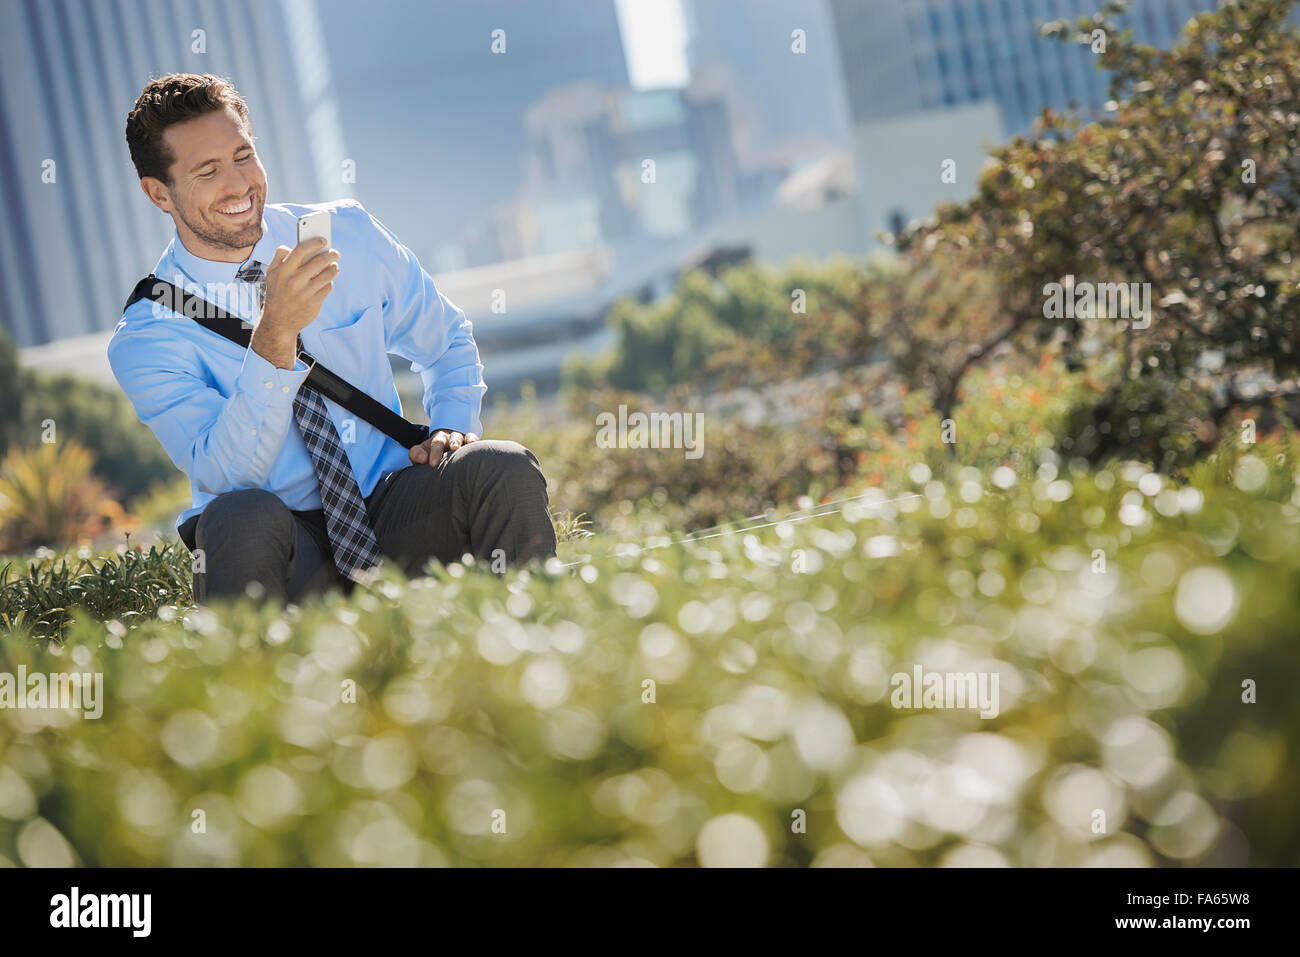 A young man on a park bench in the city, using a cell phone. Stock Photo